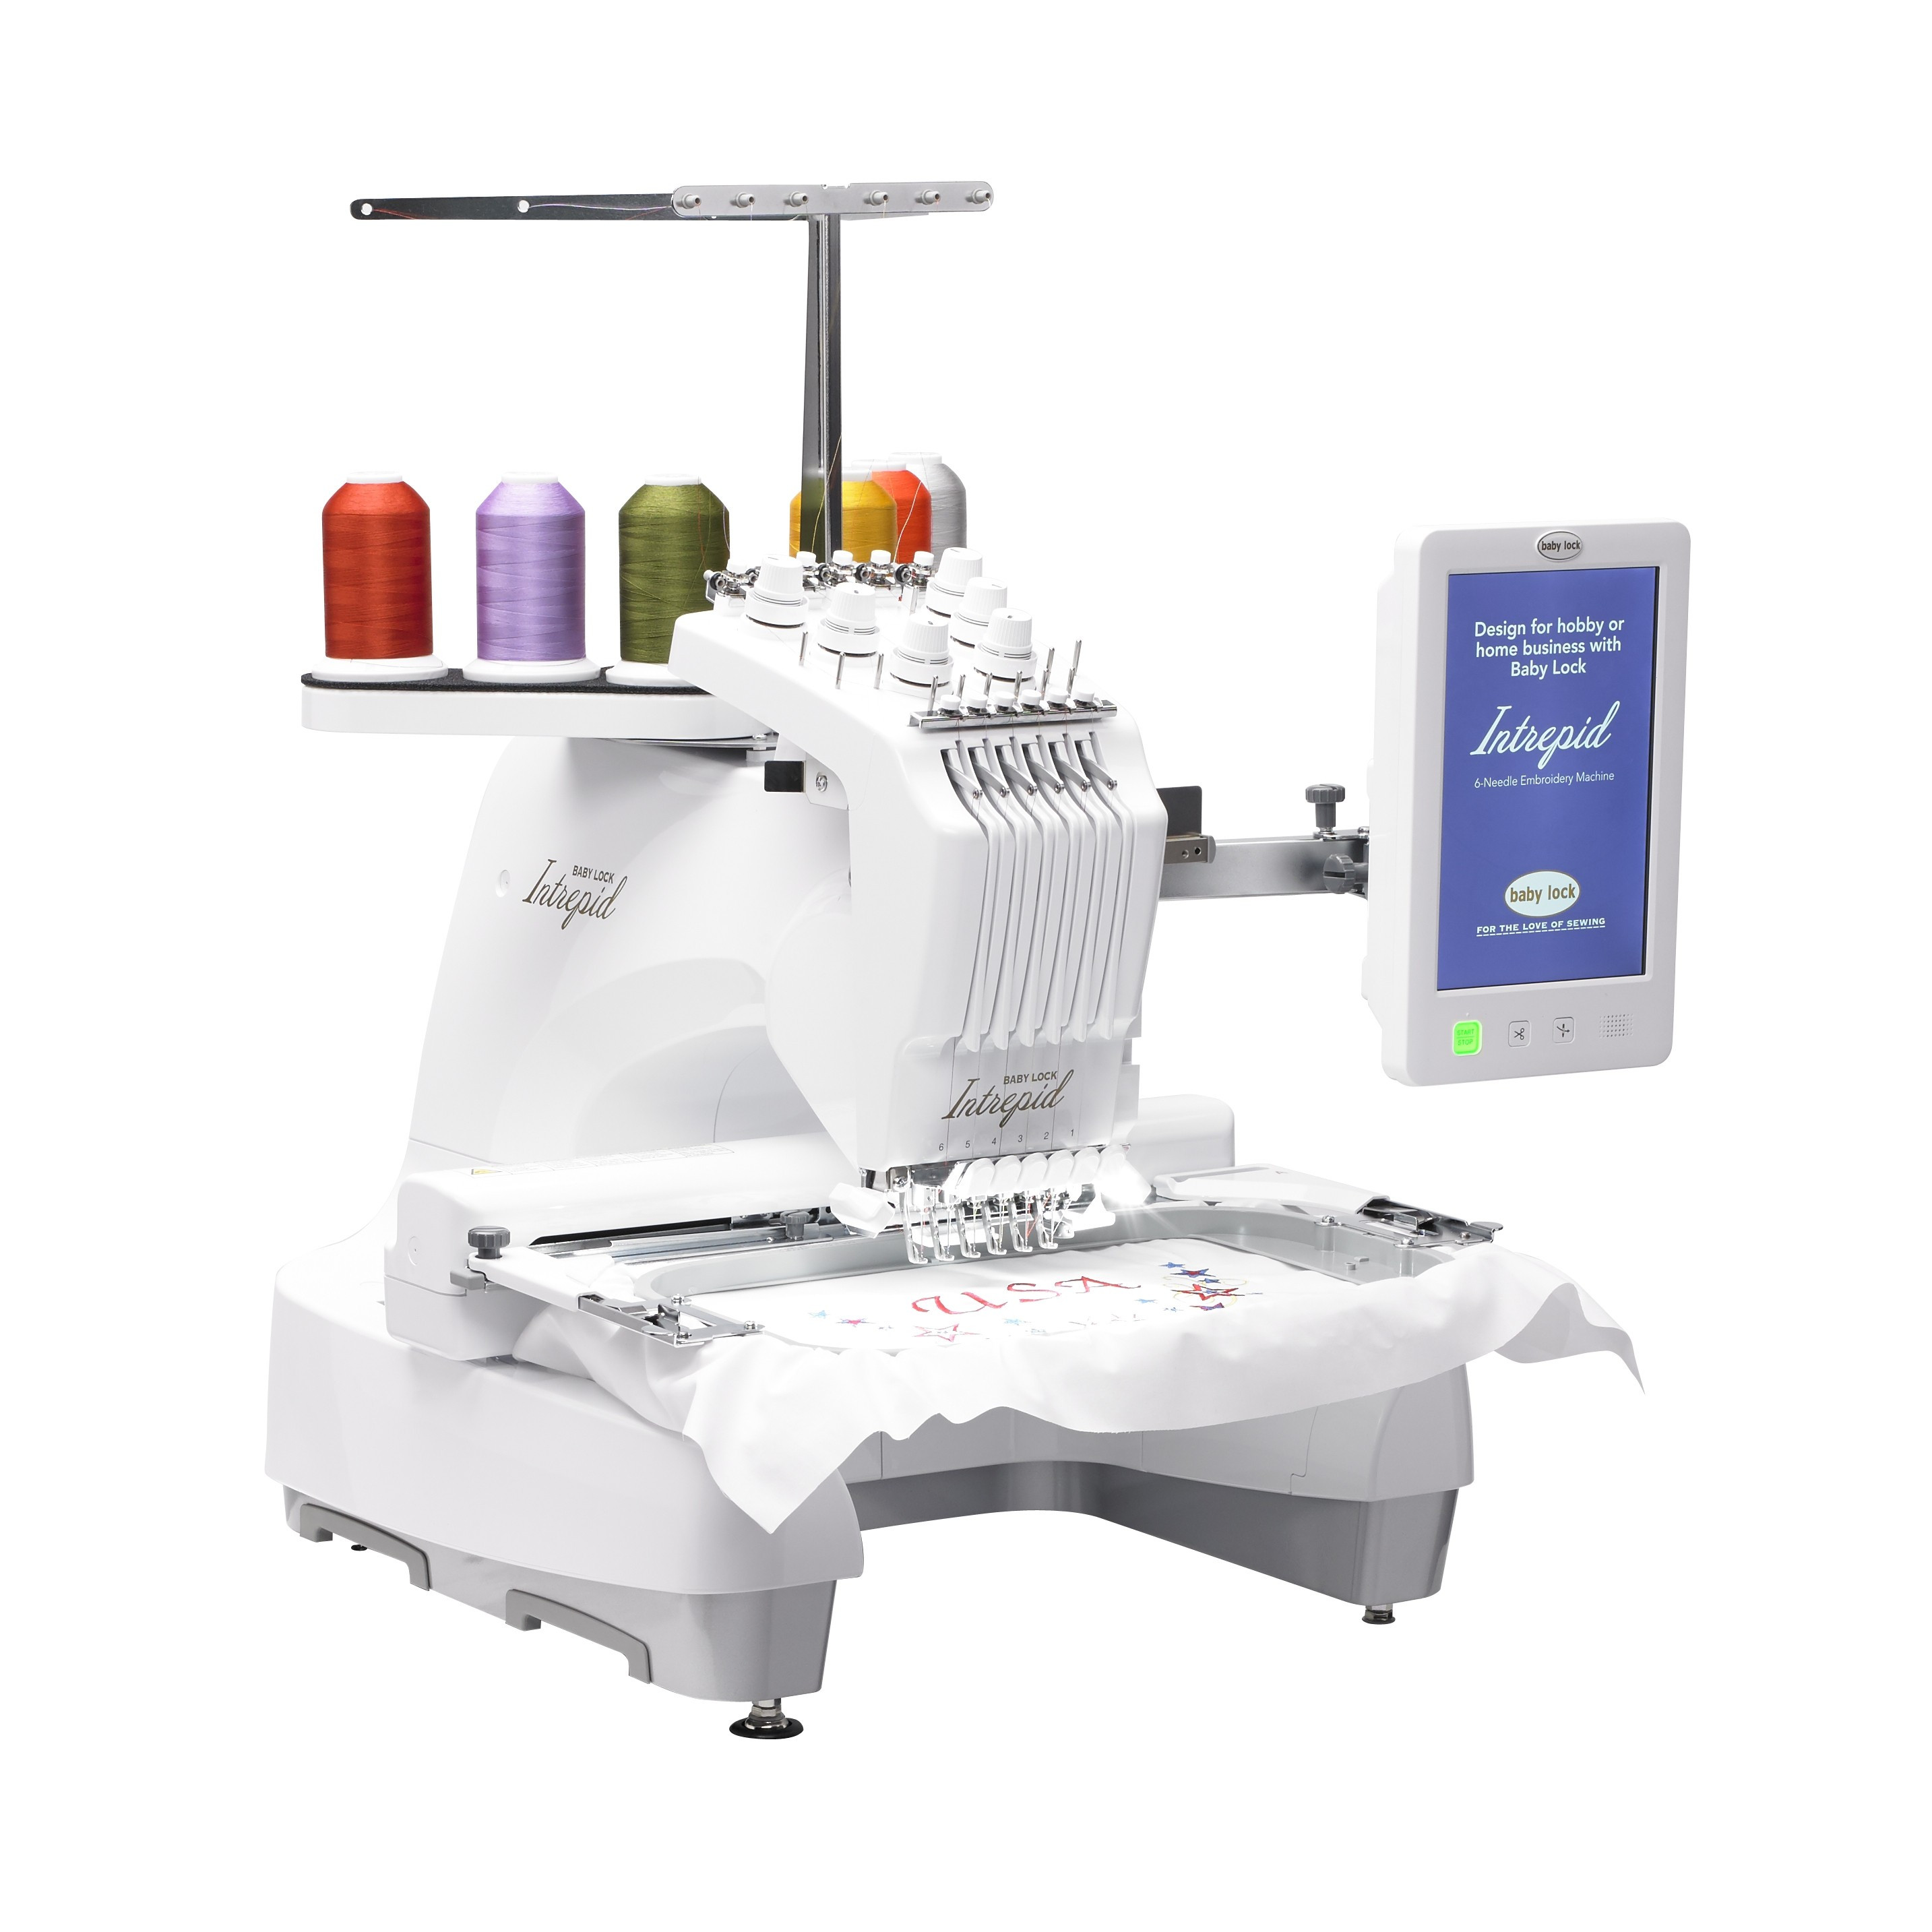 Embroidery Sewing Machine Inspirational Baby Lock Intrepid Embroidery Machine Bmt6 B Sew Inn Of Wonderful 40 Images Embroidery Sewing Machine